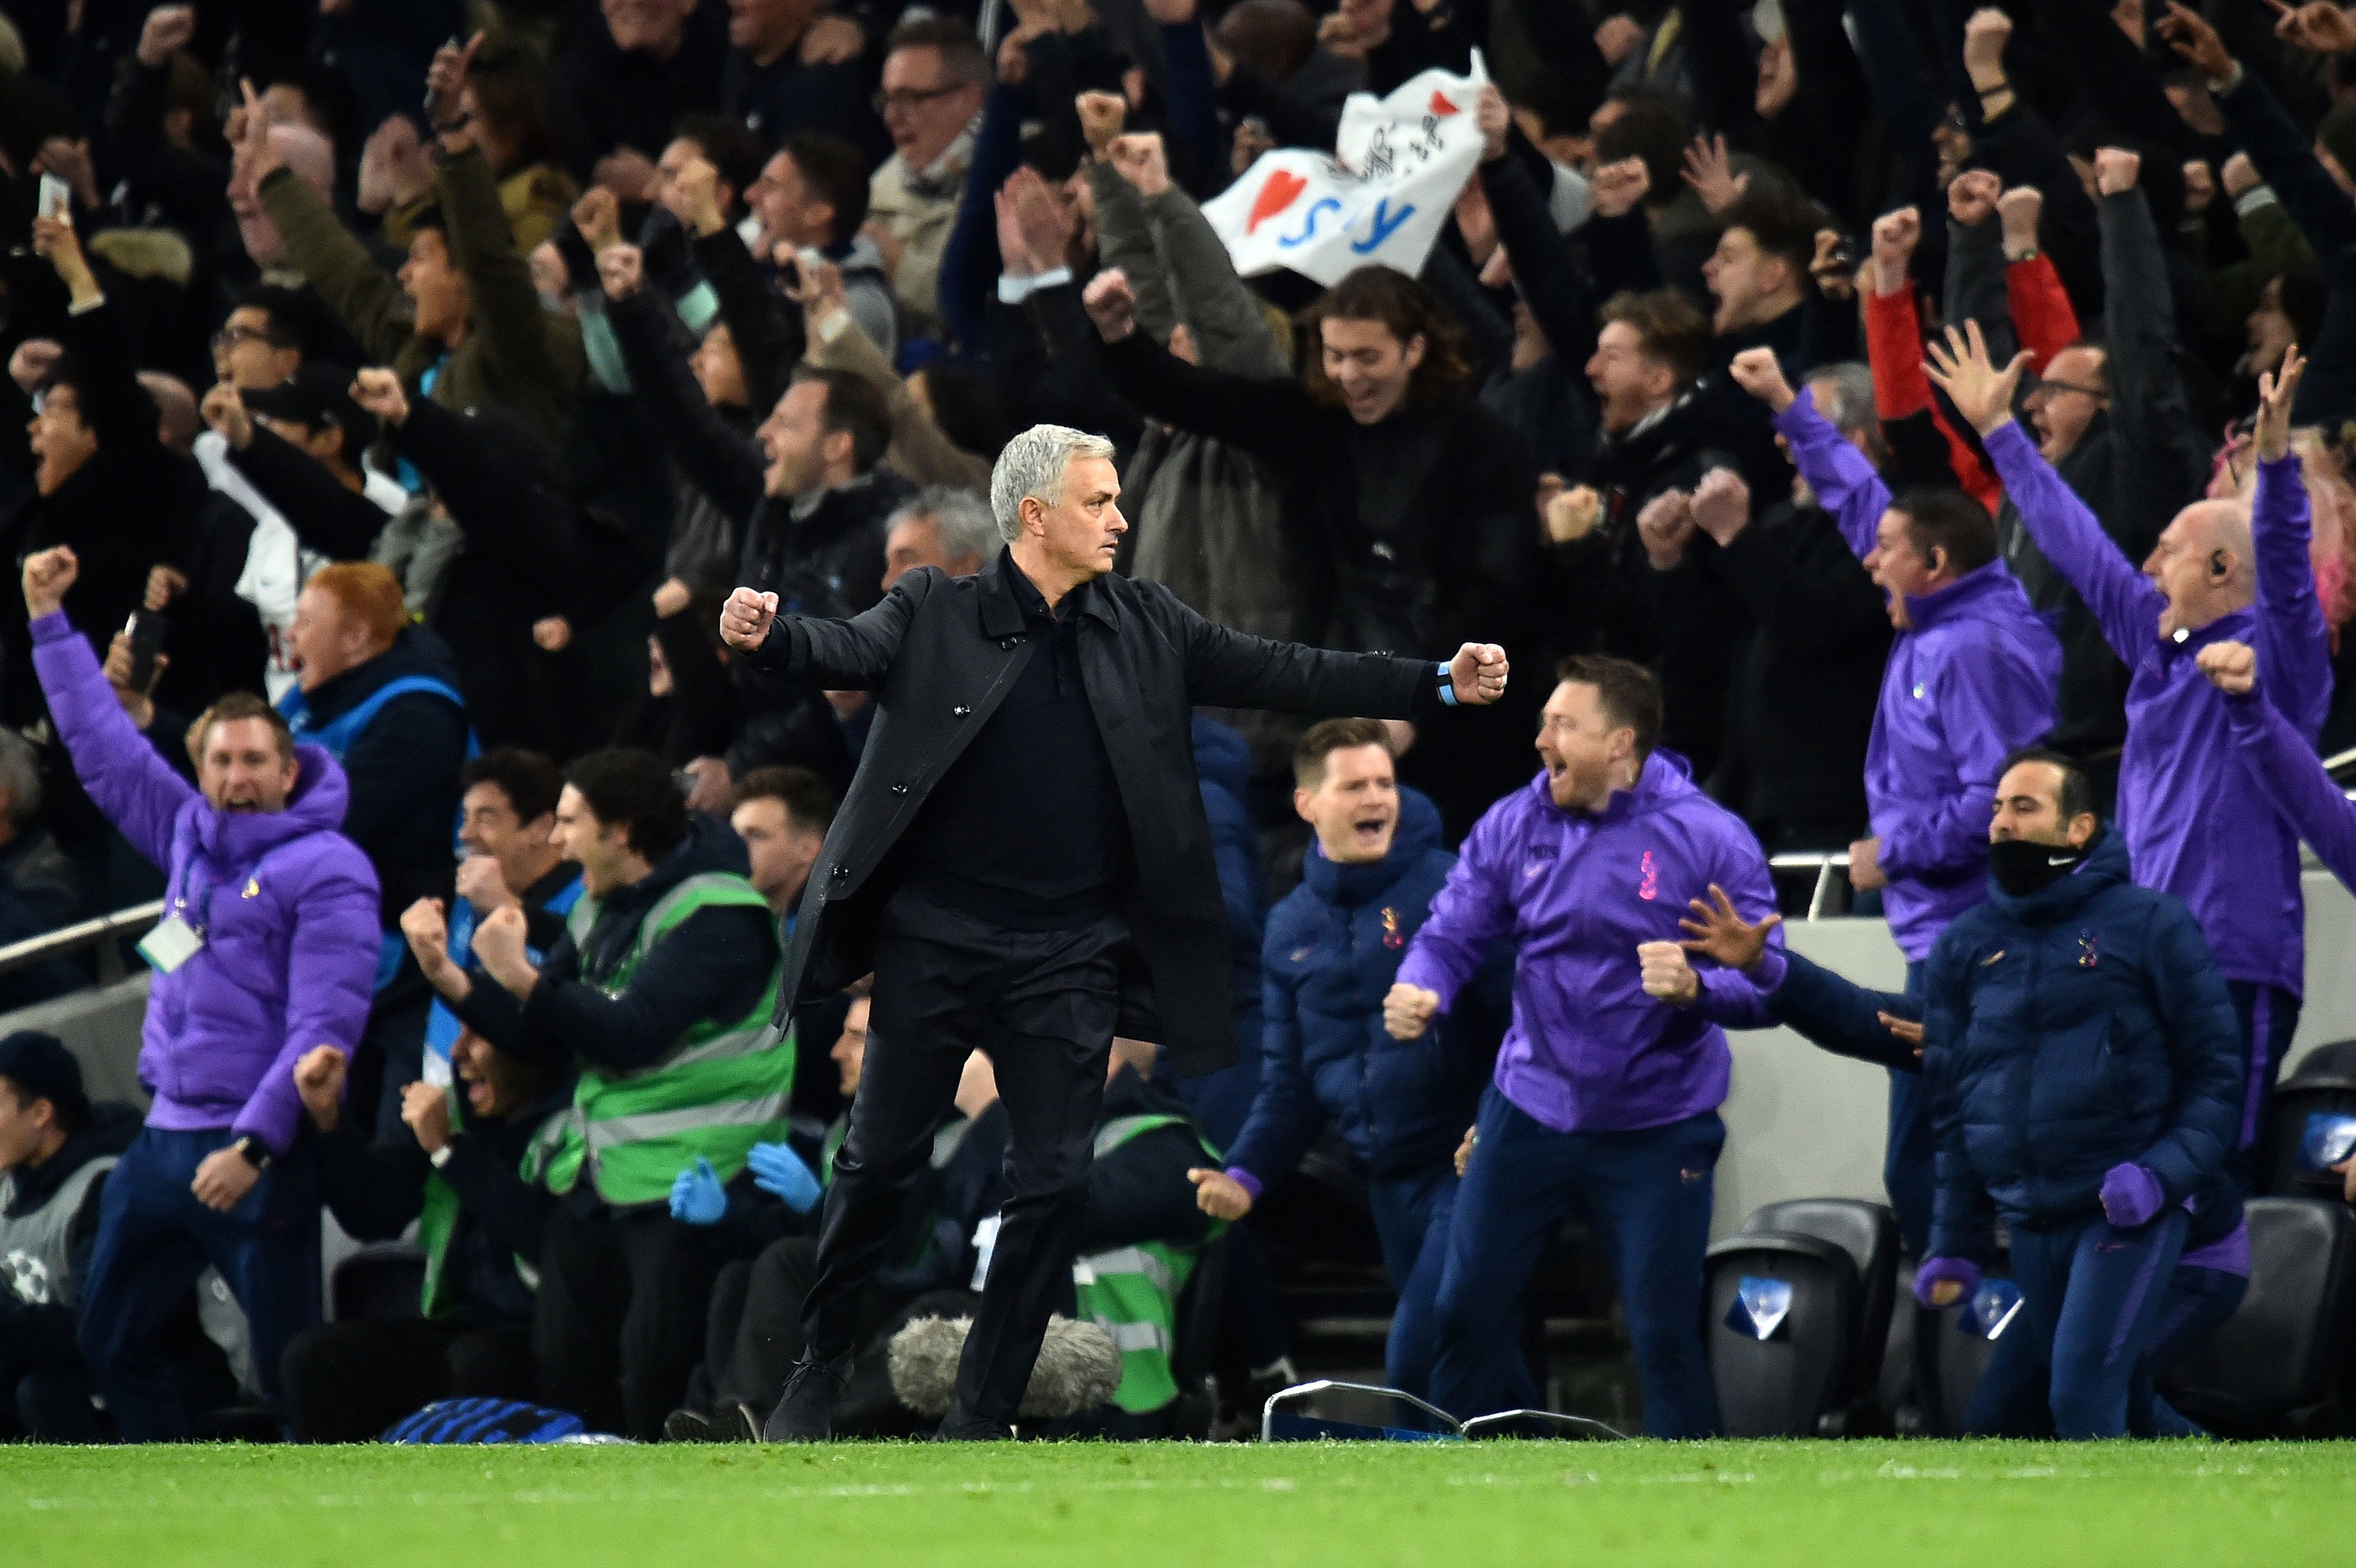 Mourinho working his magic at Tottenham? (Photo by GLYN KIRK/IKIMAGES/AFP via Getty Images)